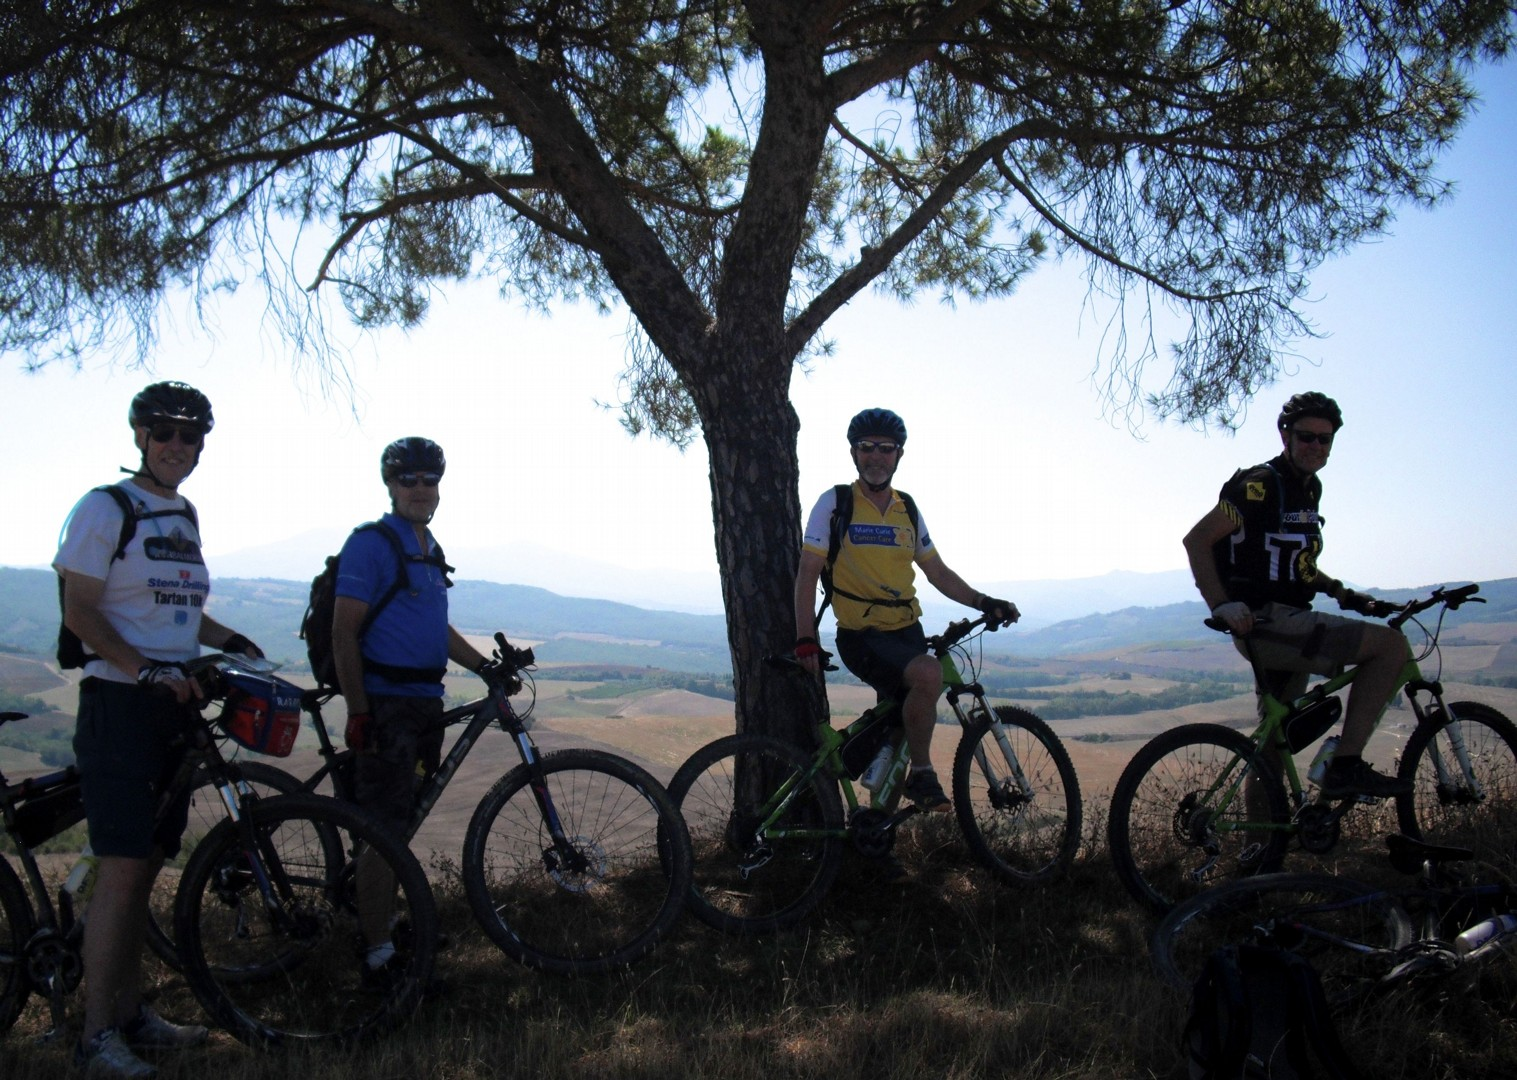 mountain-biking-holiday-tuscany-nature.jpg - Italy - Tuscany - Sacred Routes - Guided Mountain Bike Holiday - Italia Mountain Biking